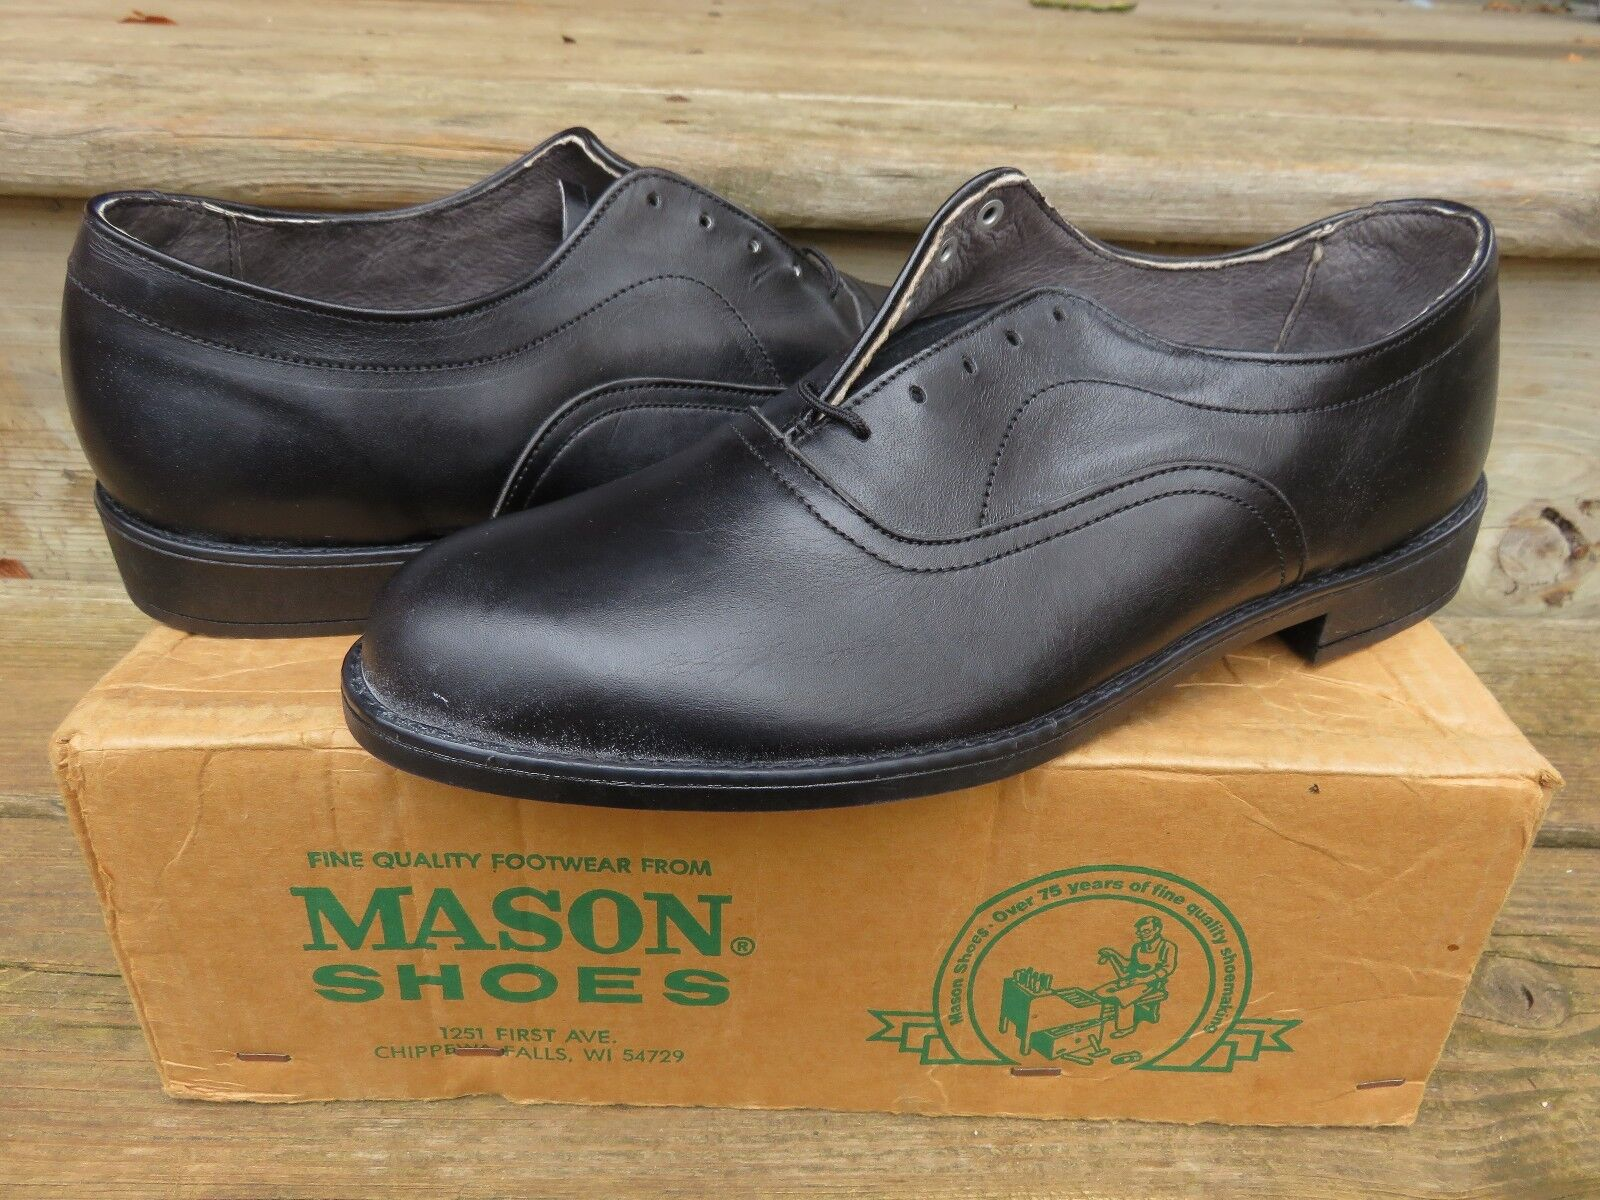 NEW Mason Oxford Casual Dress Shoes Black Sz 10 D NOS Leather Casual dress shoes